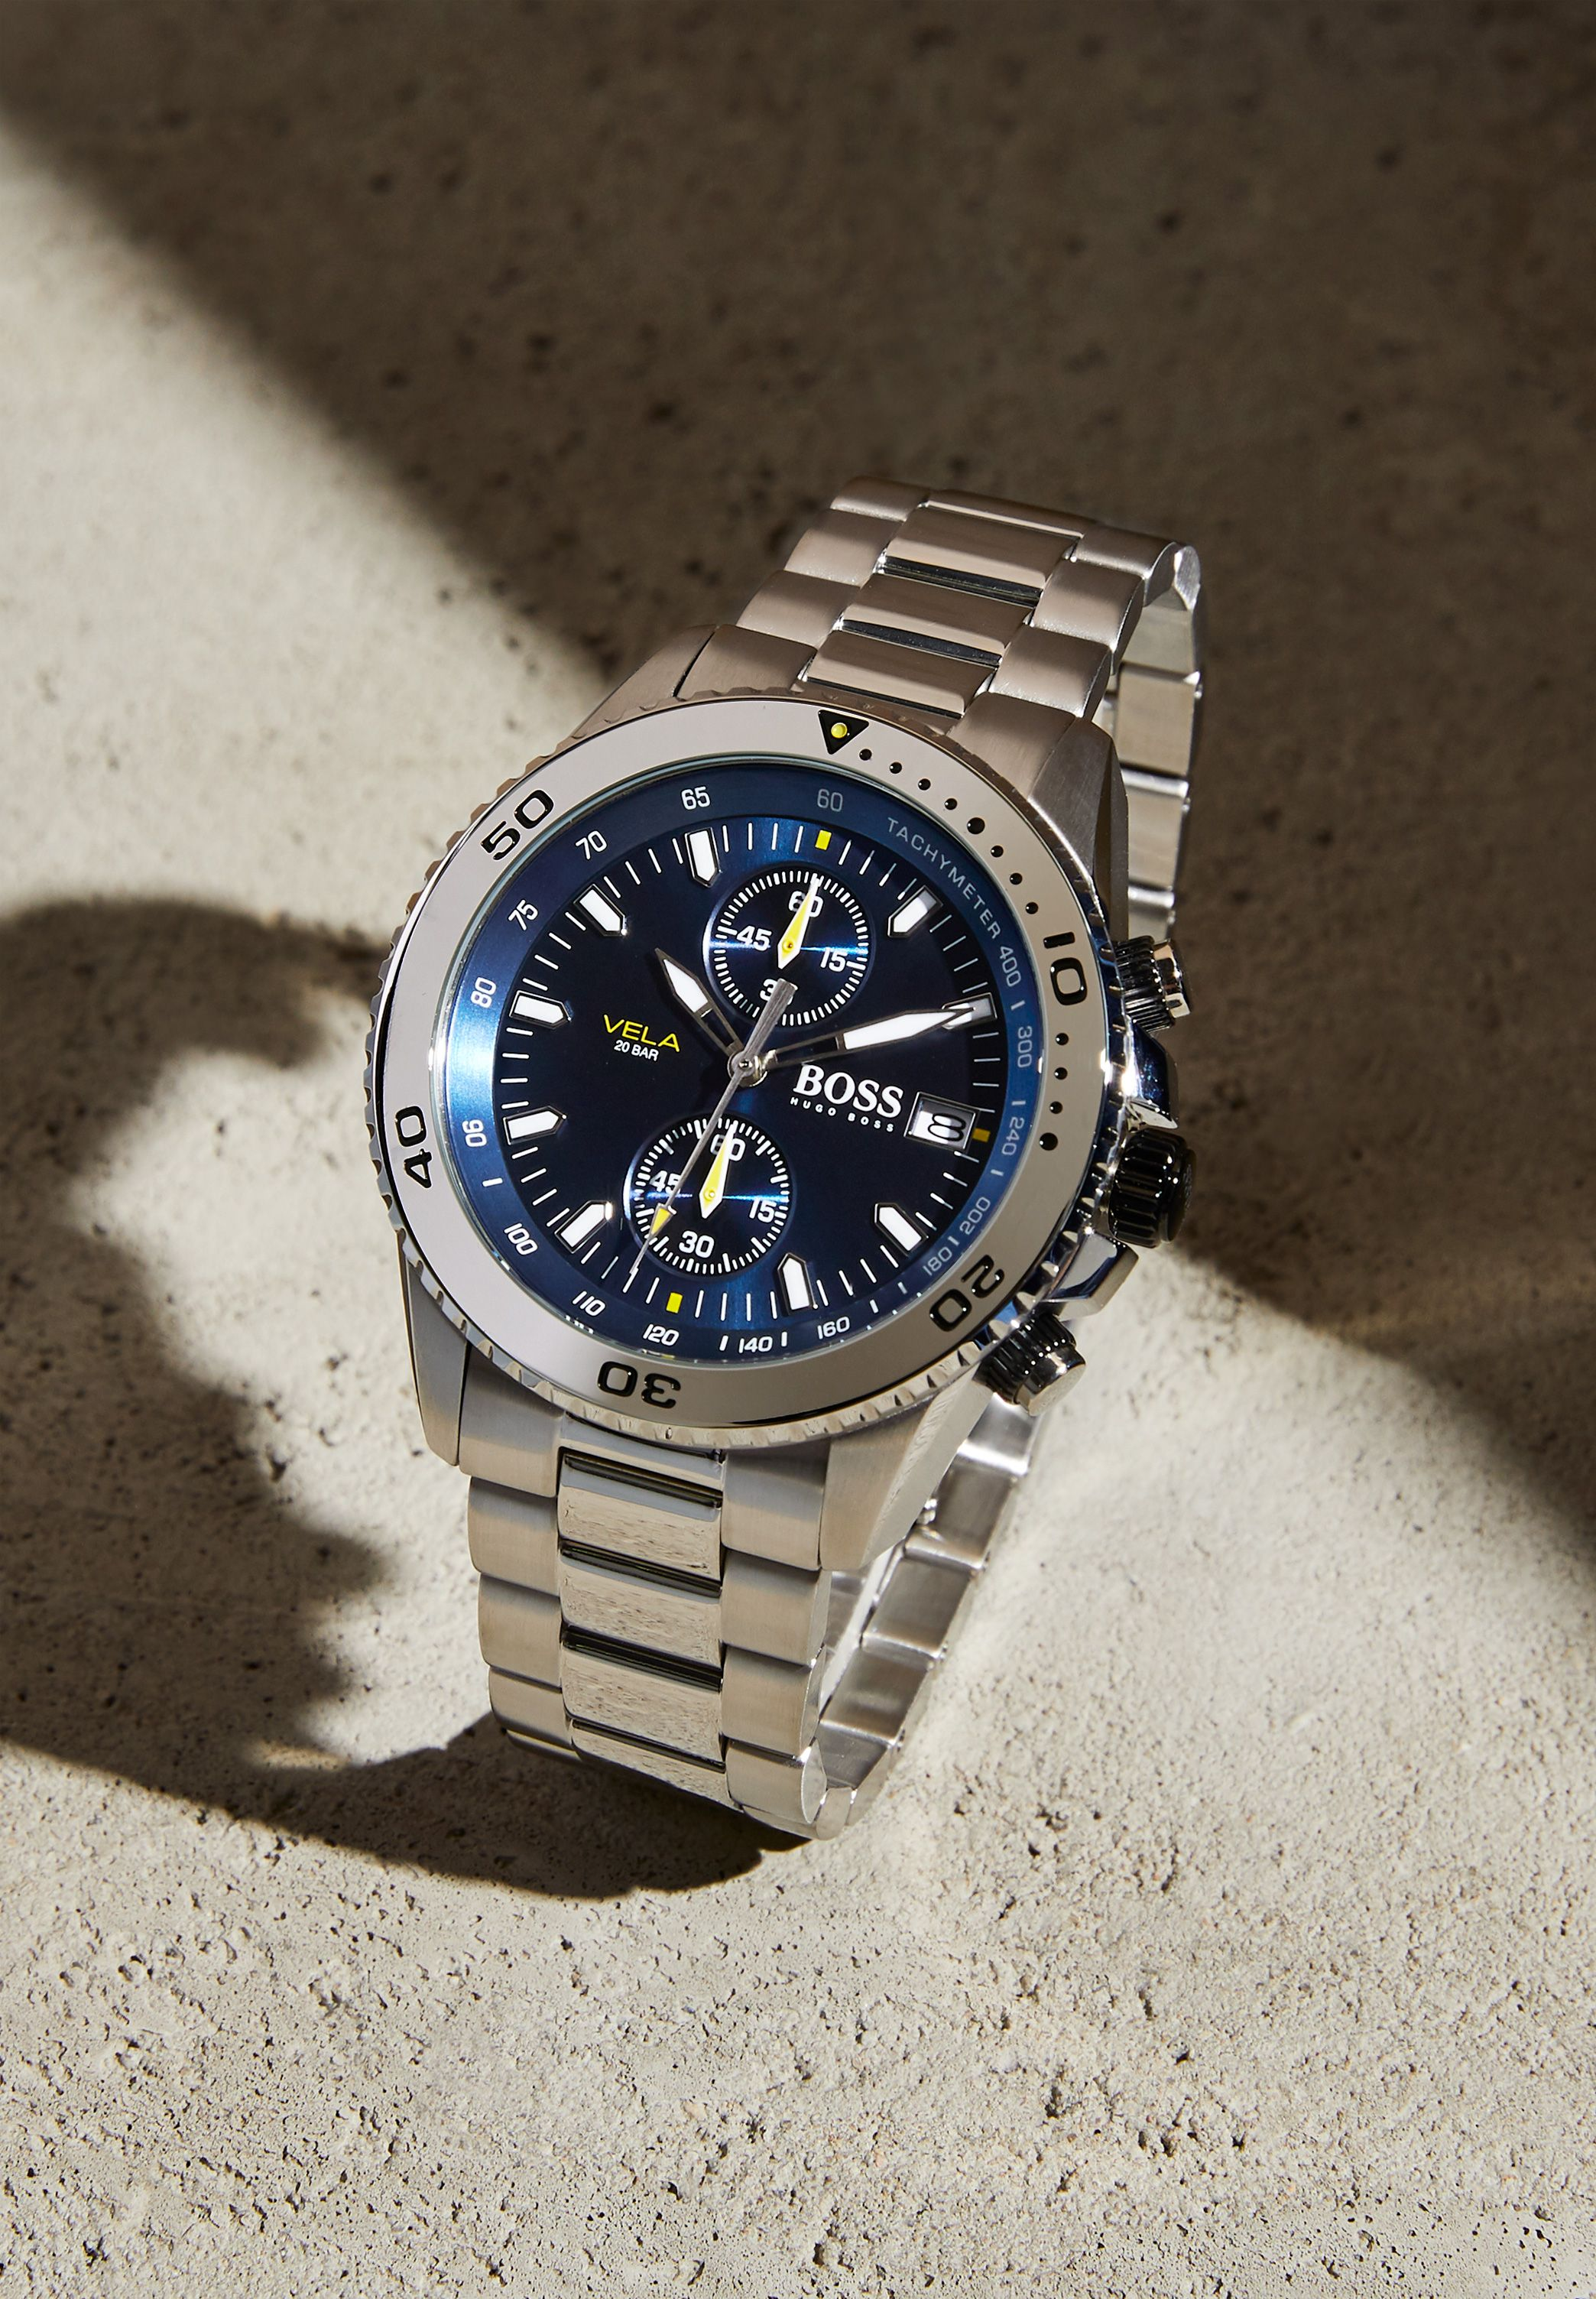 This Water-Resistant Timepiece Is Perfect for Any Occasion